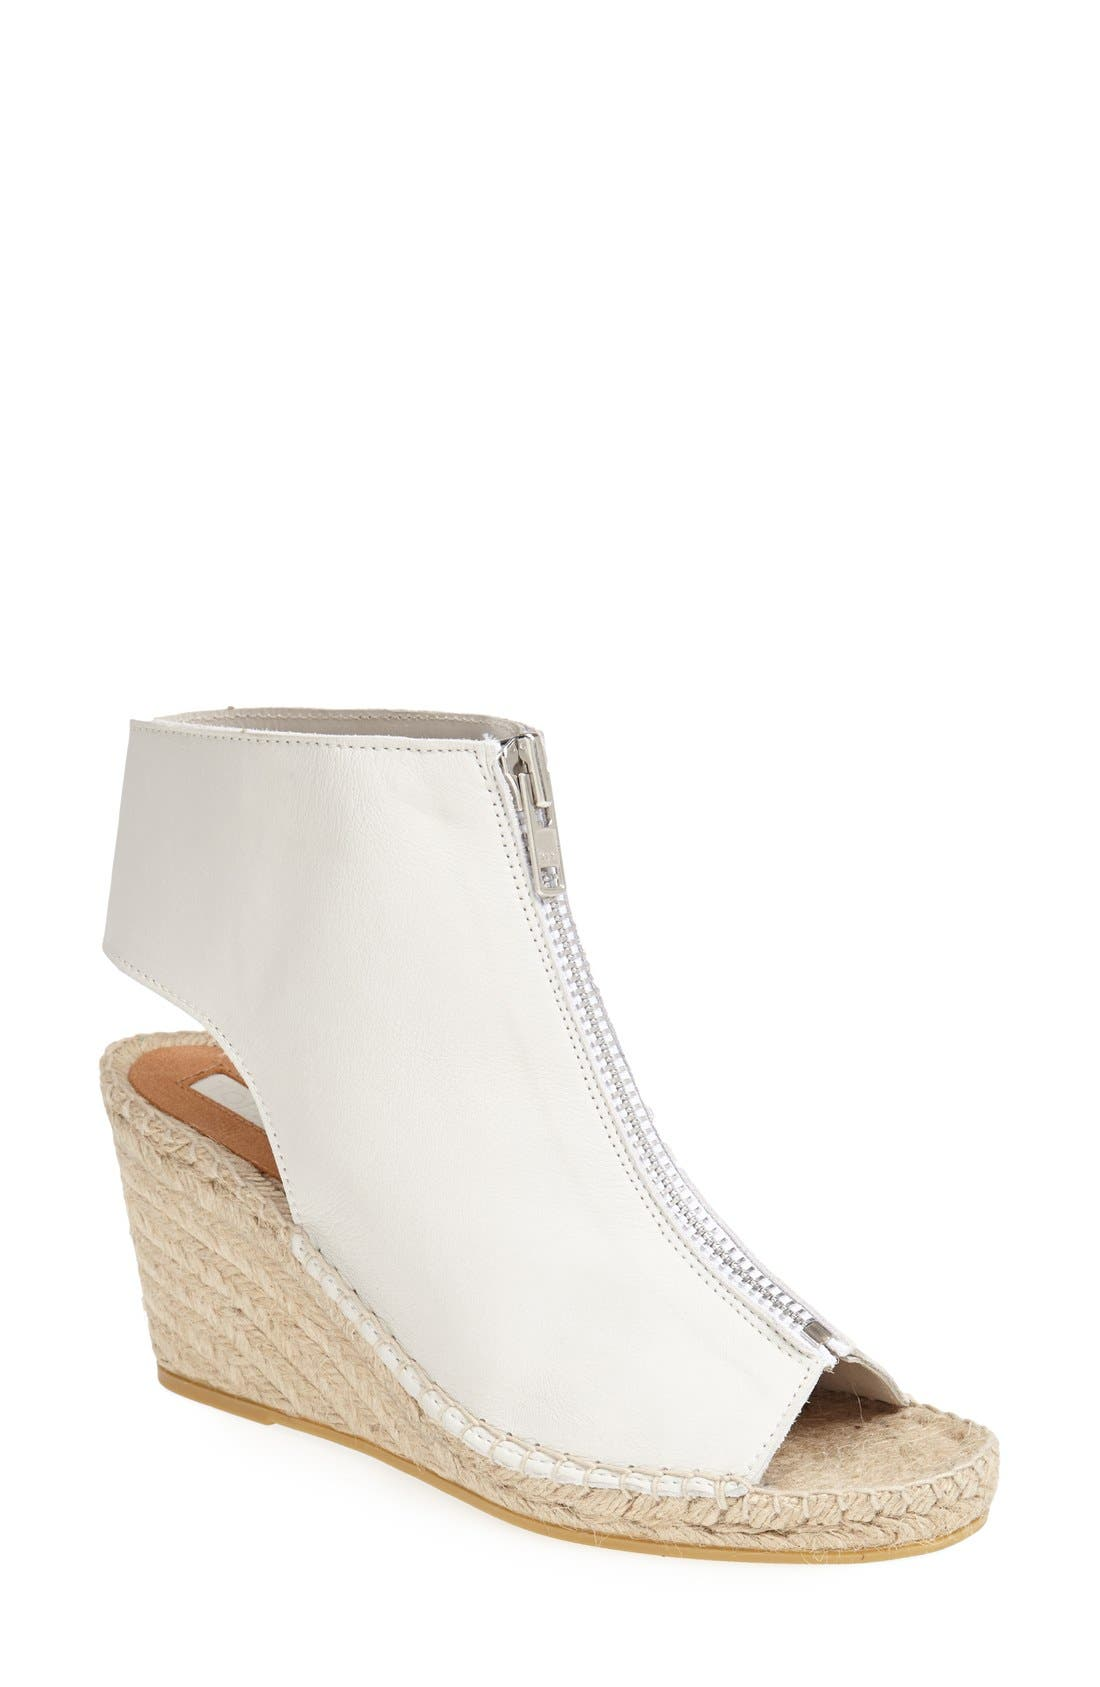 Alternate Image 1 Selected - Topshop Zip Up Cutout Leather Bootie Wedge